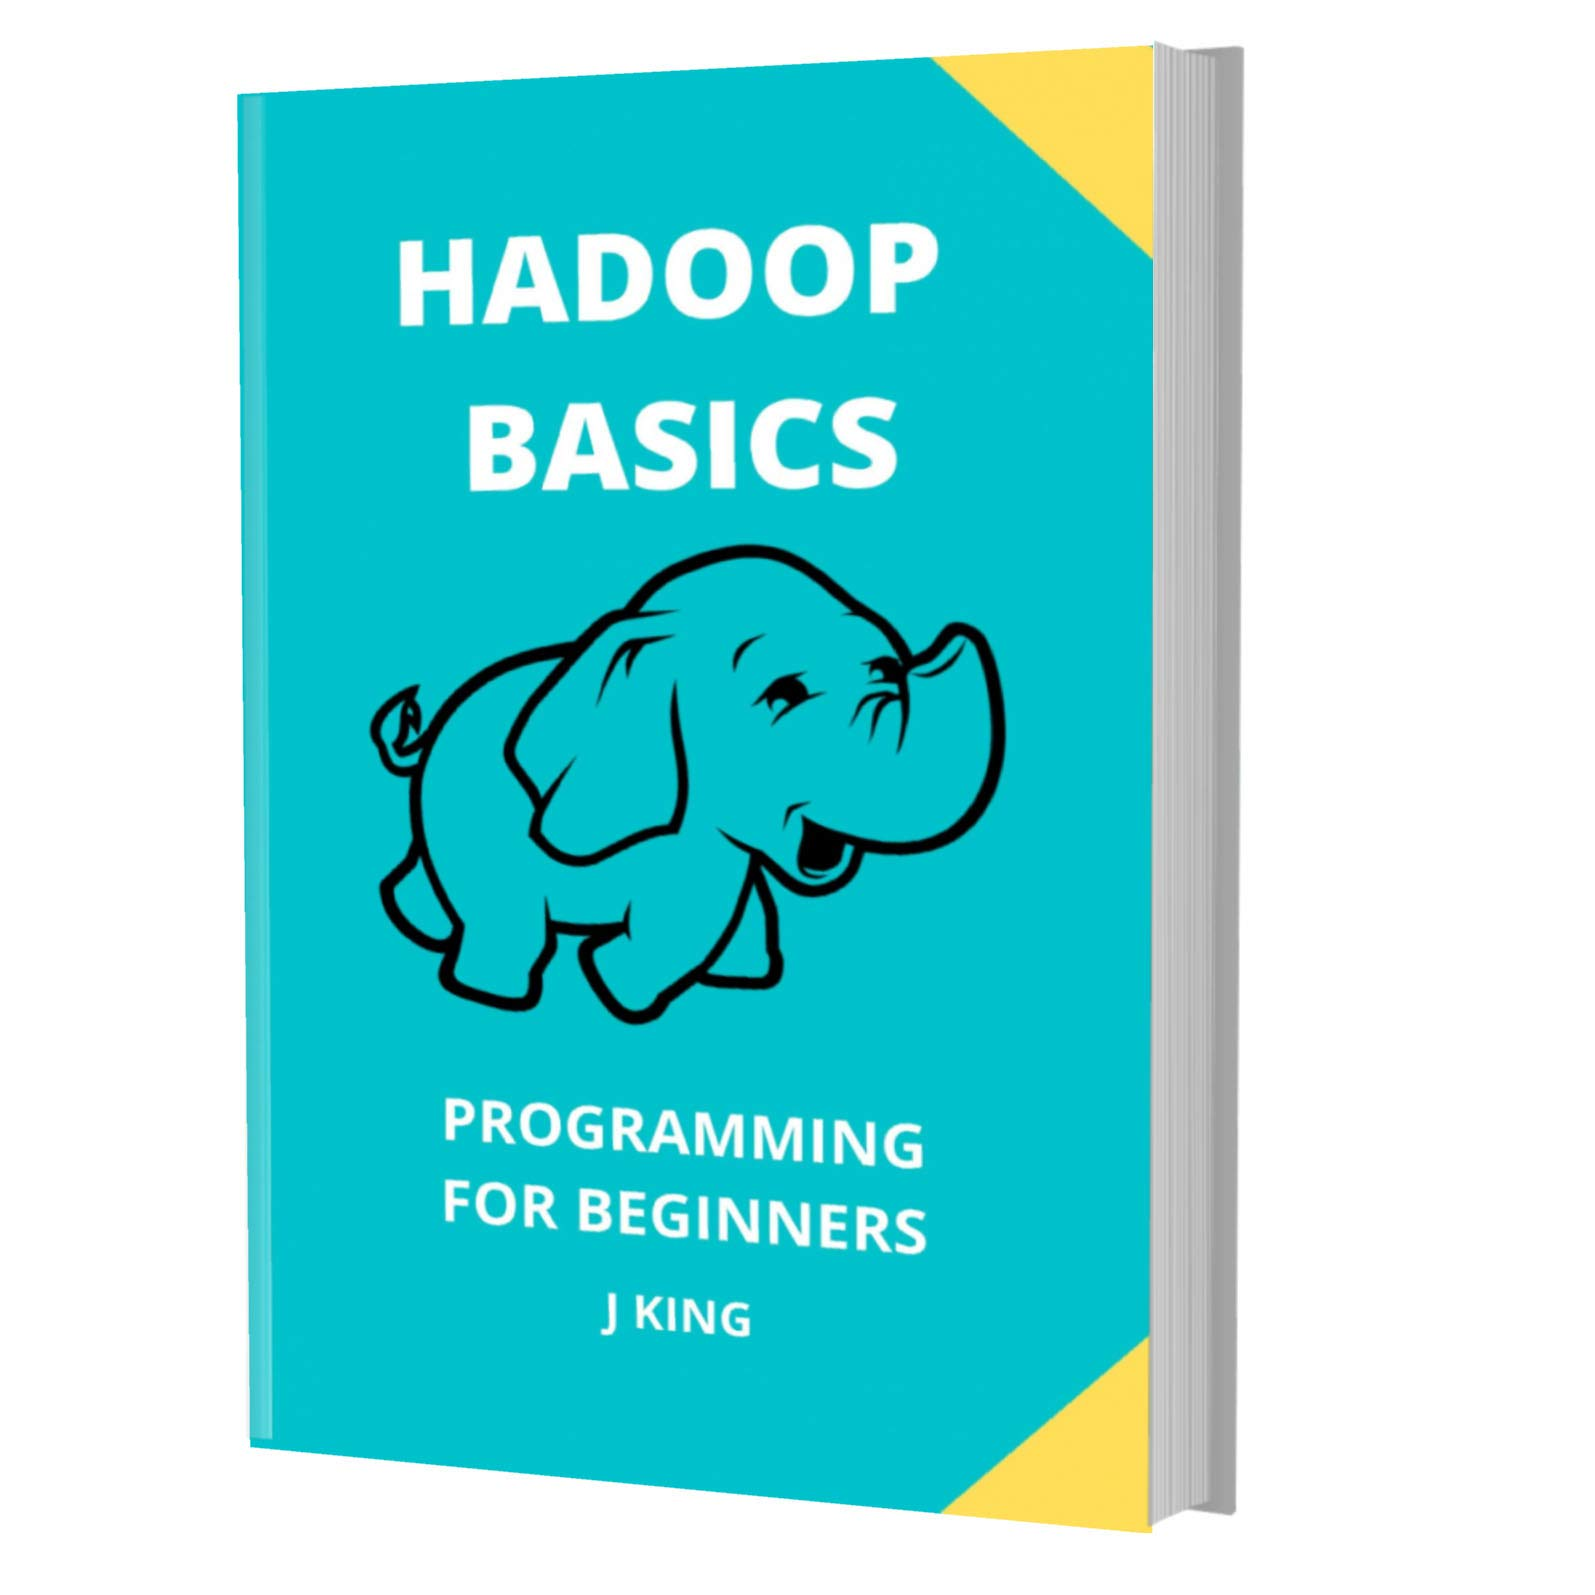 HADOOP BASICS: PROGRAMMING FOR BEGINNERS:  Learn Coding Fast! HADOOP Crash Course, A QuickStart Guide, Tutorial Book by Program Examples, In Easy Steps! por J KING